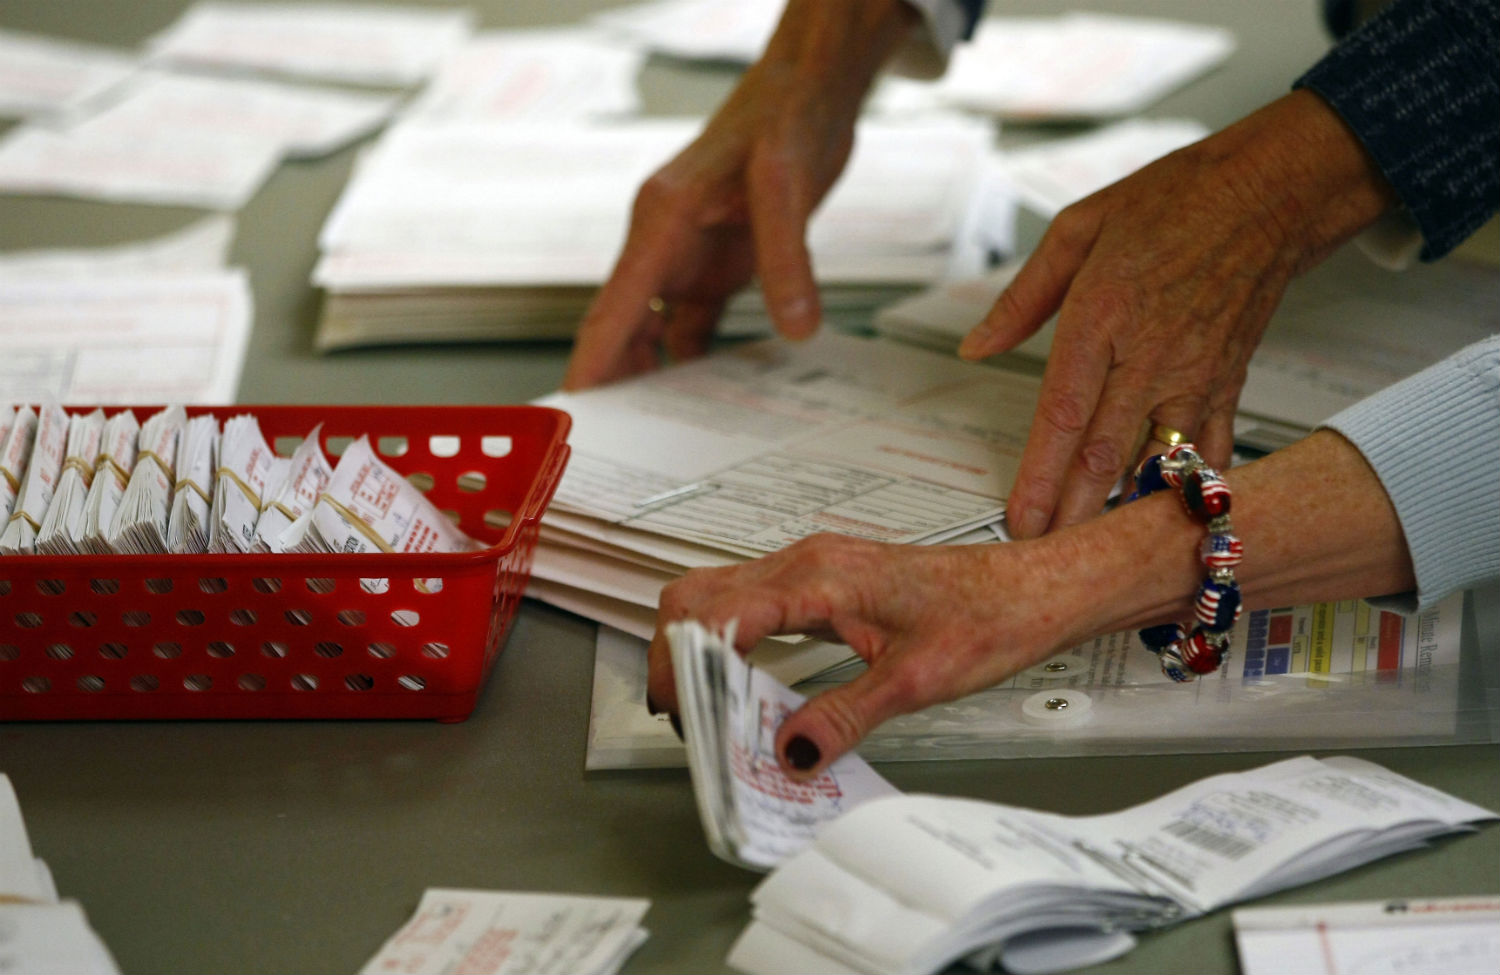 Hundreds-of-Voters-Are-Disenfranchised-by-North-Carolina's-New-Voting-Restrictions